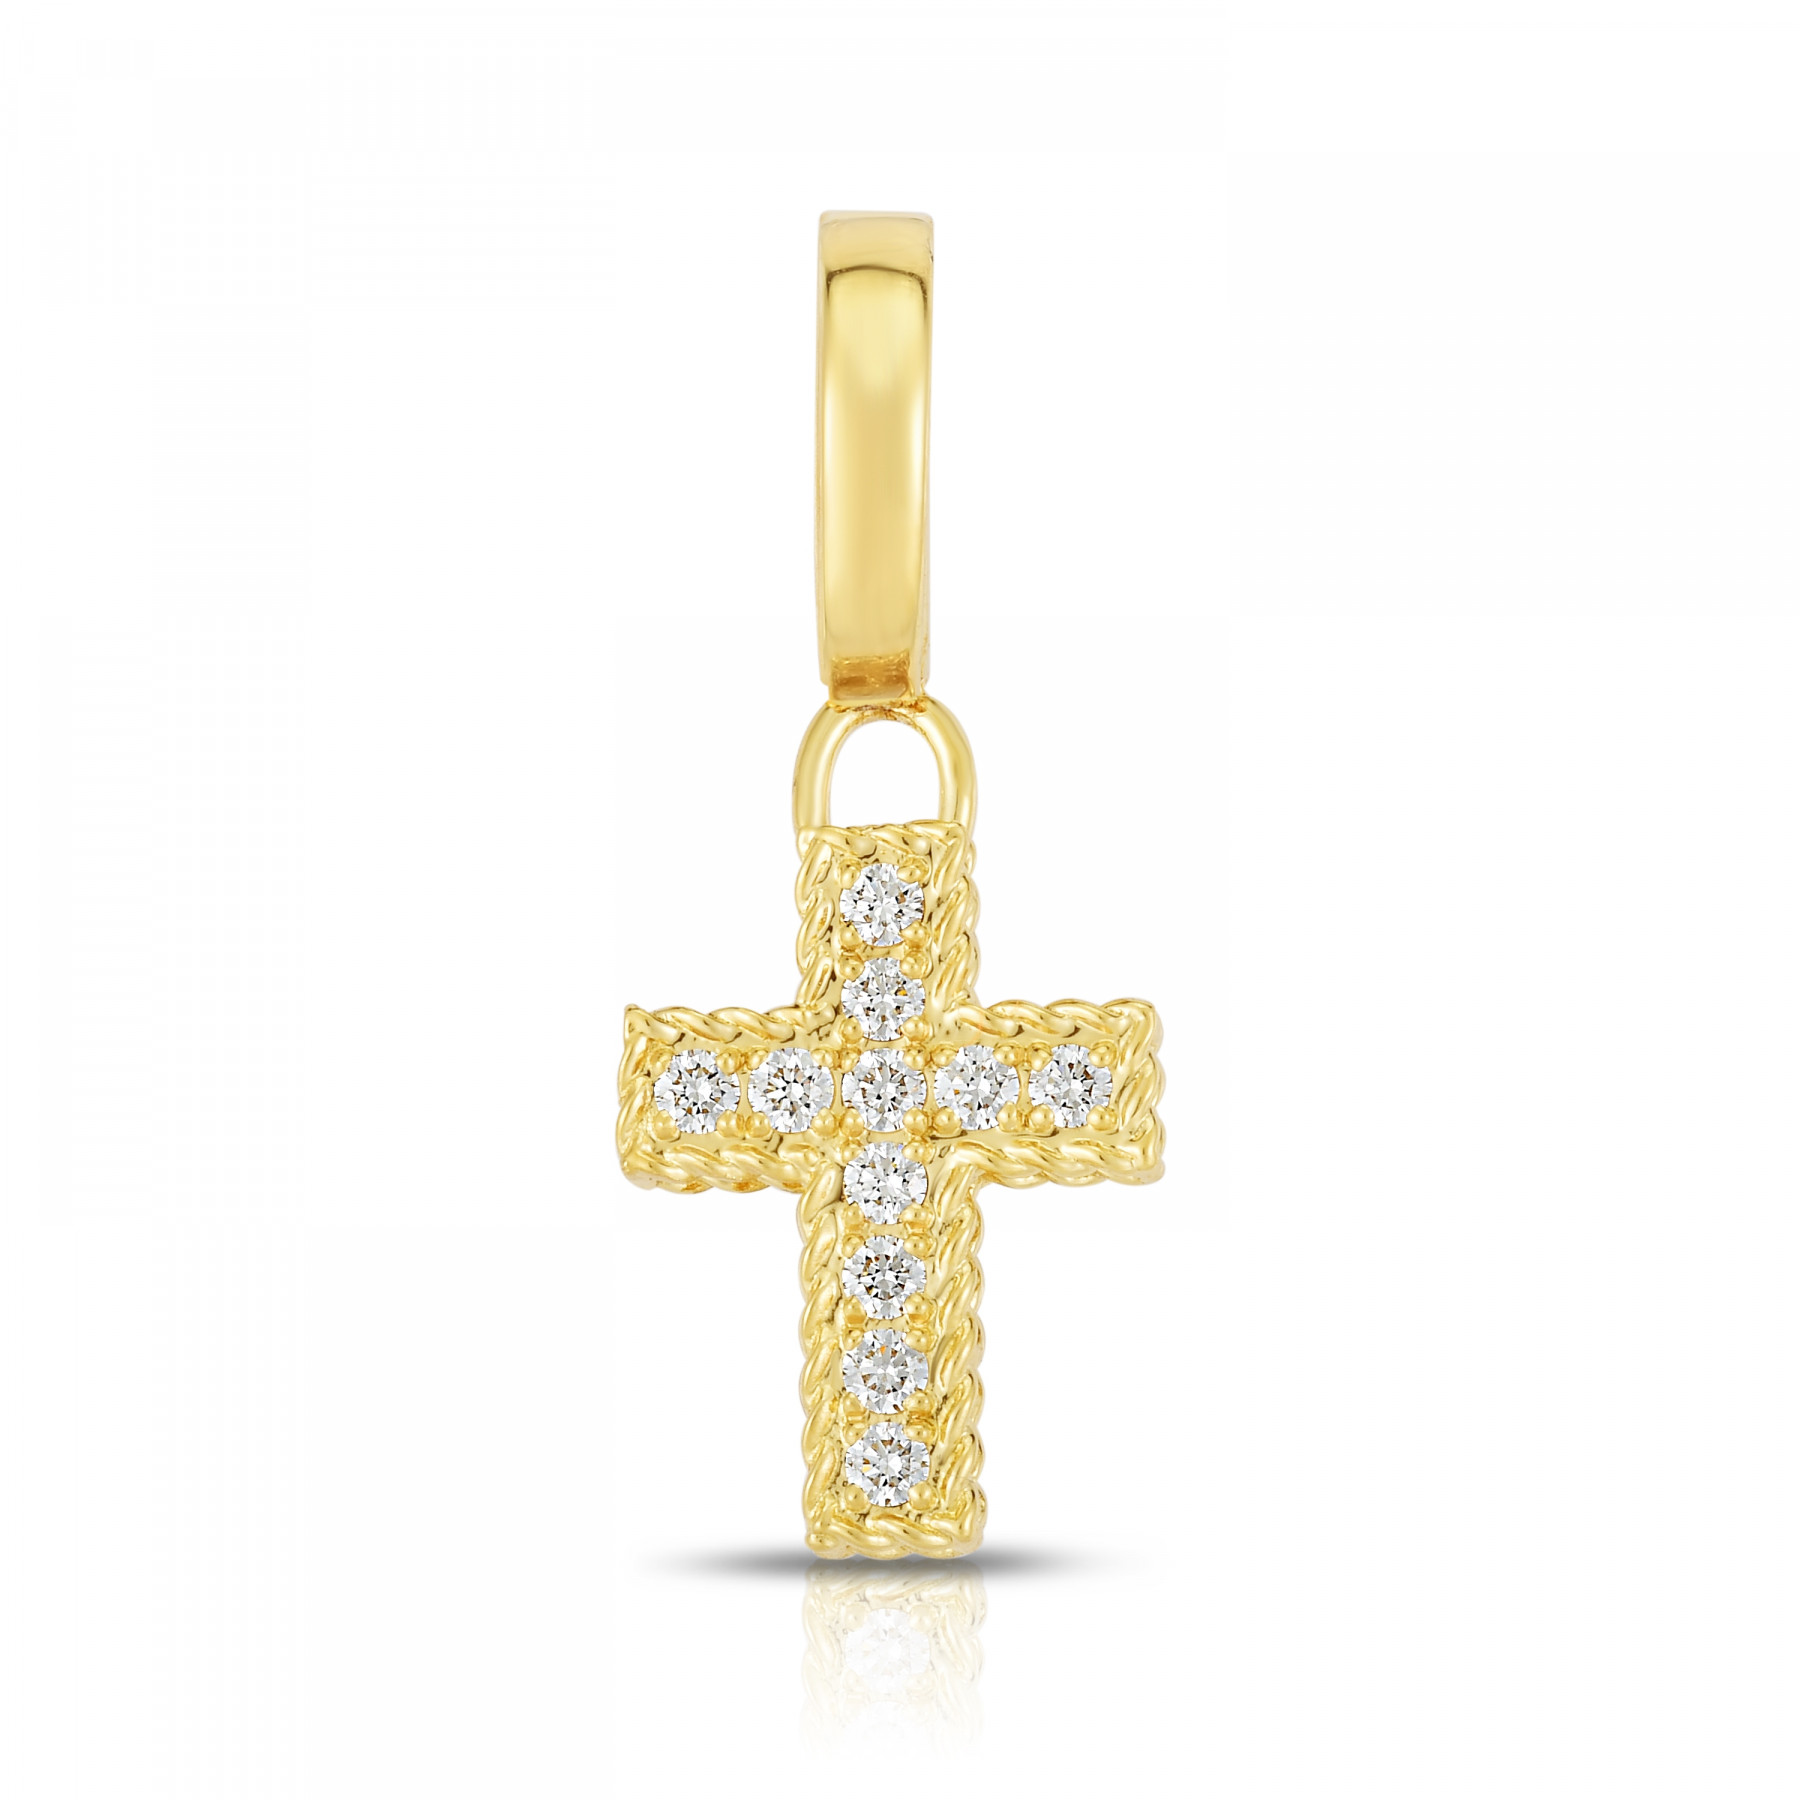 Roberto Coin Diamond Cross Charm in Yellow Gold